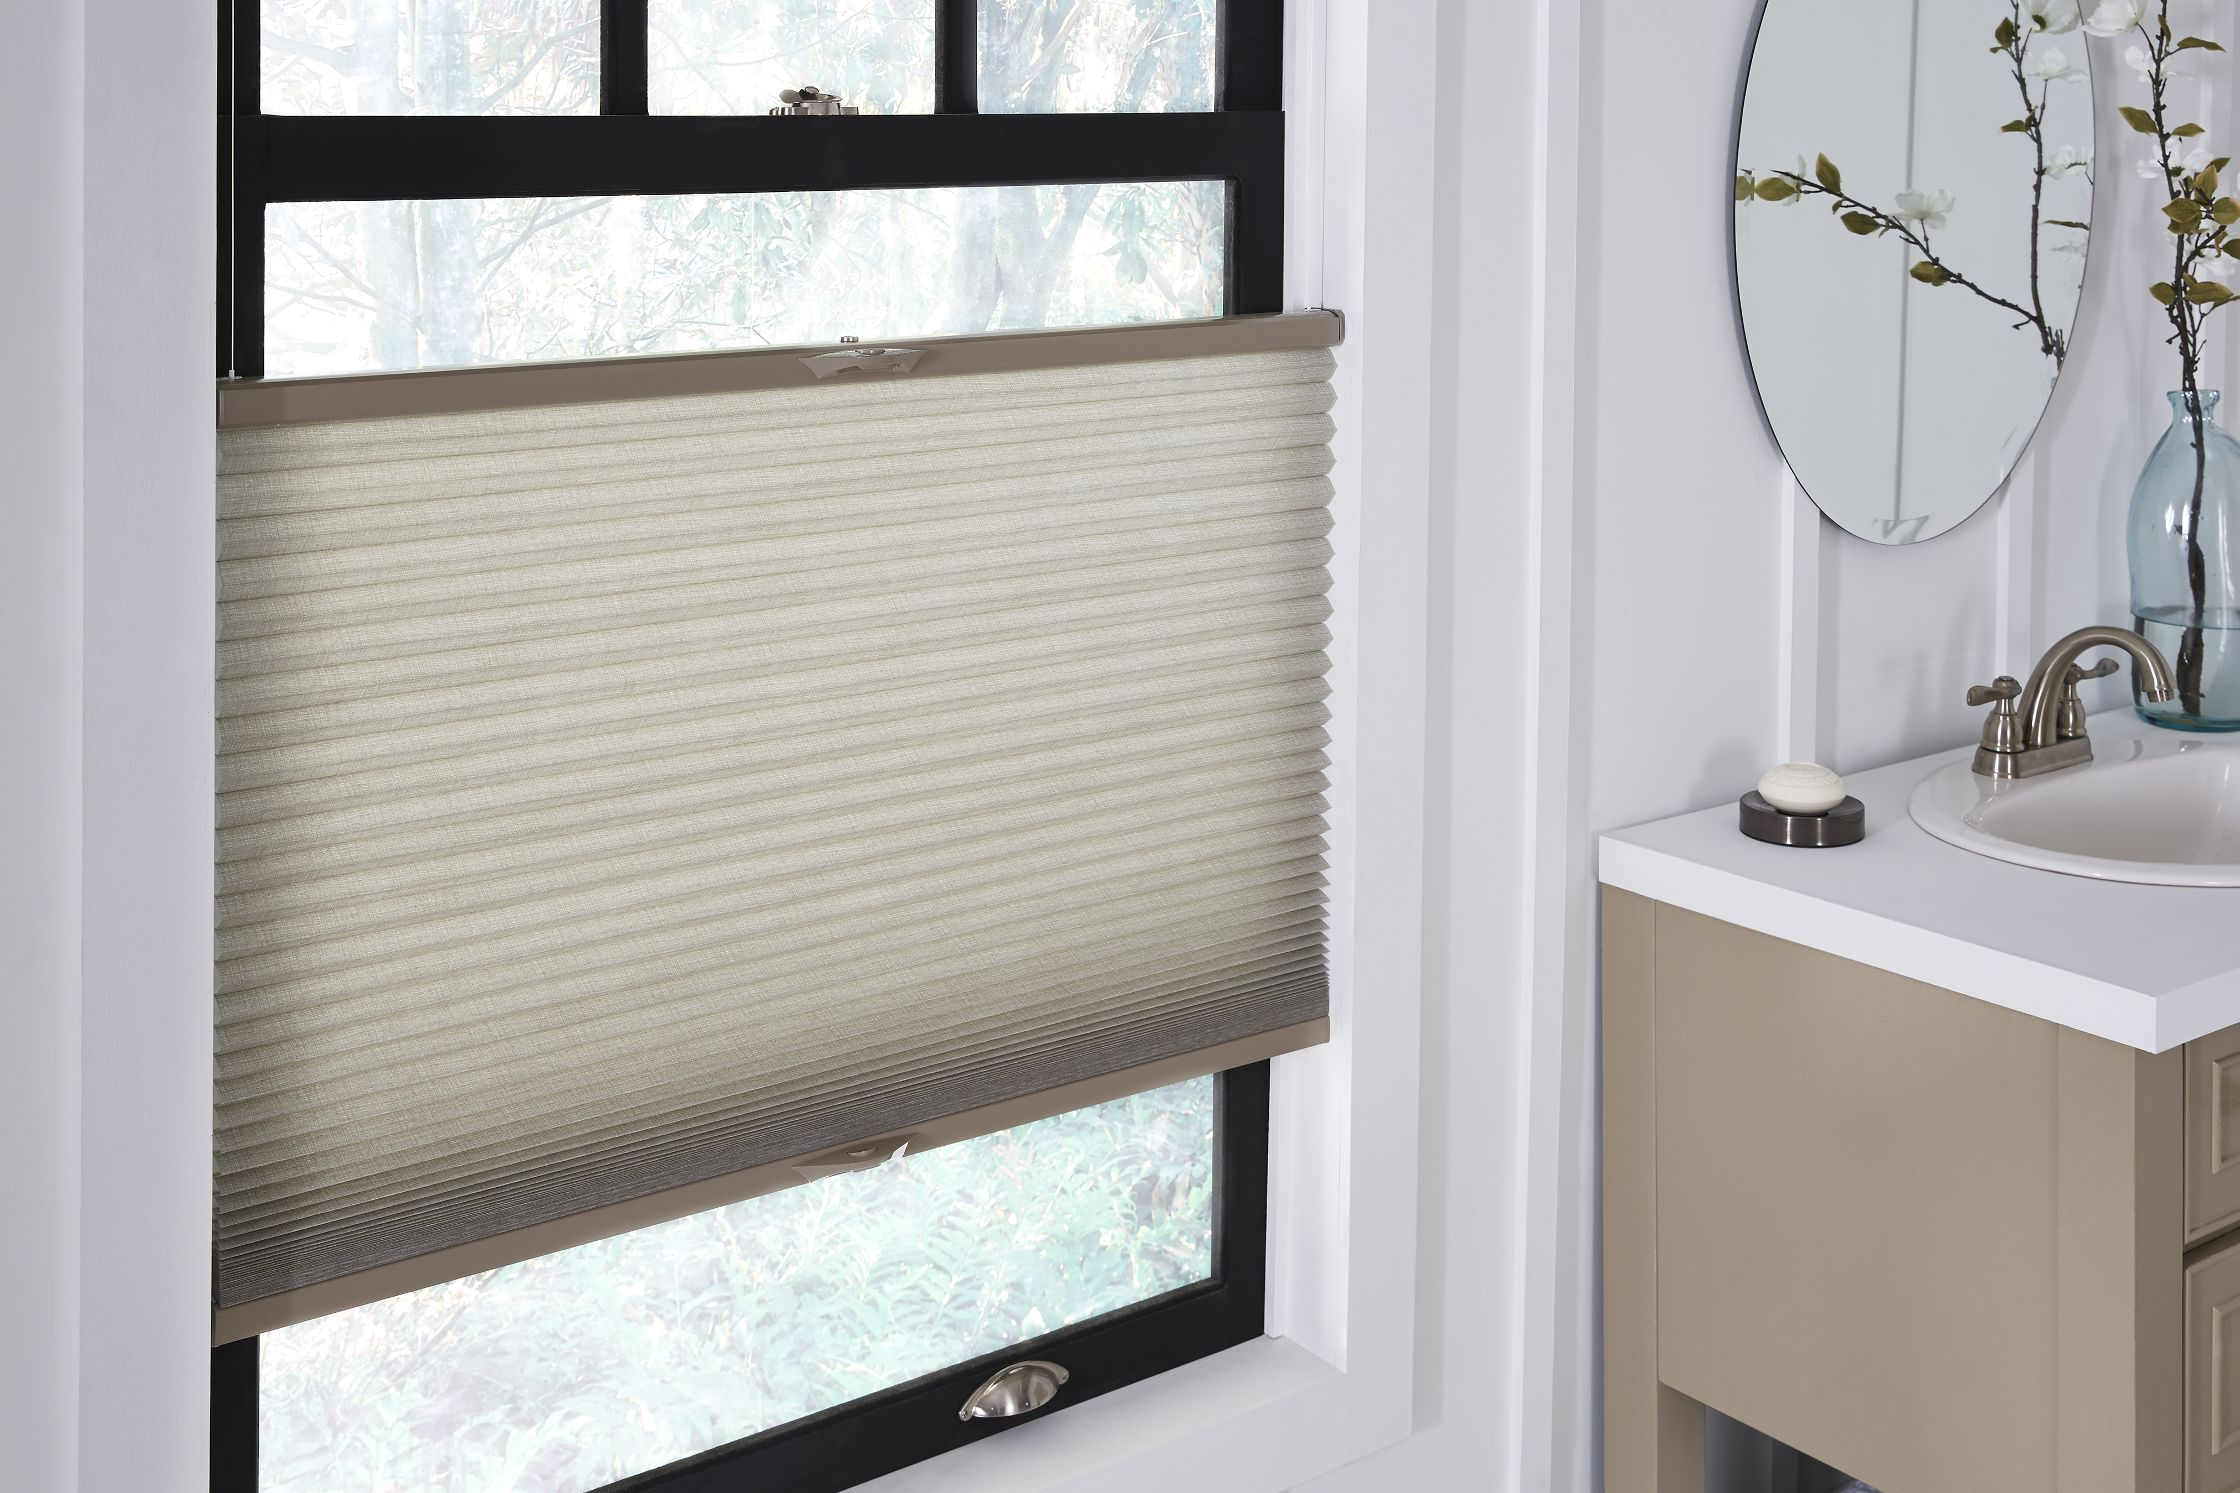 Cellular shades offer excellent thermal insulation for cold - or hot - climates